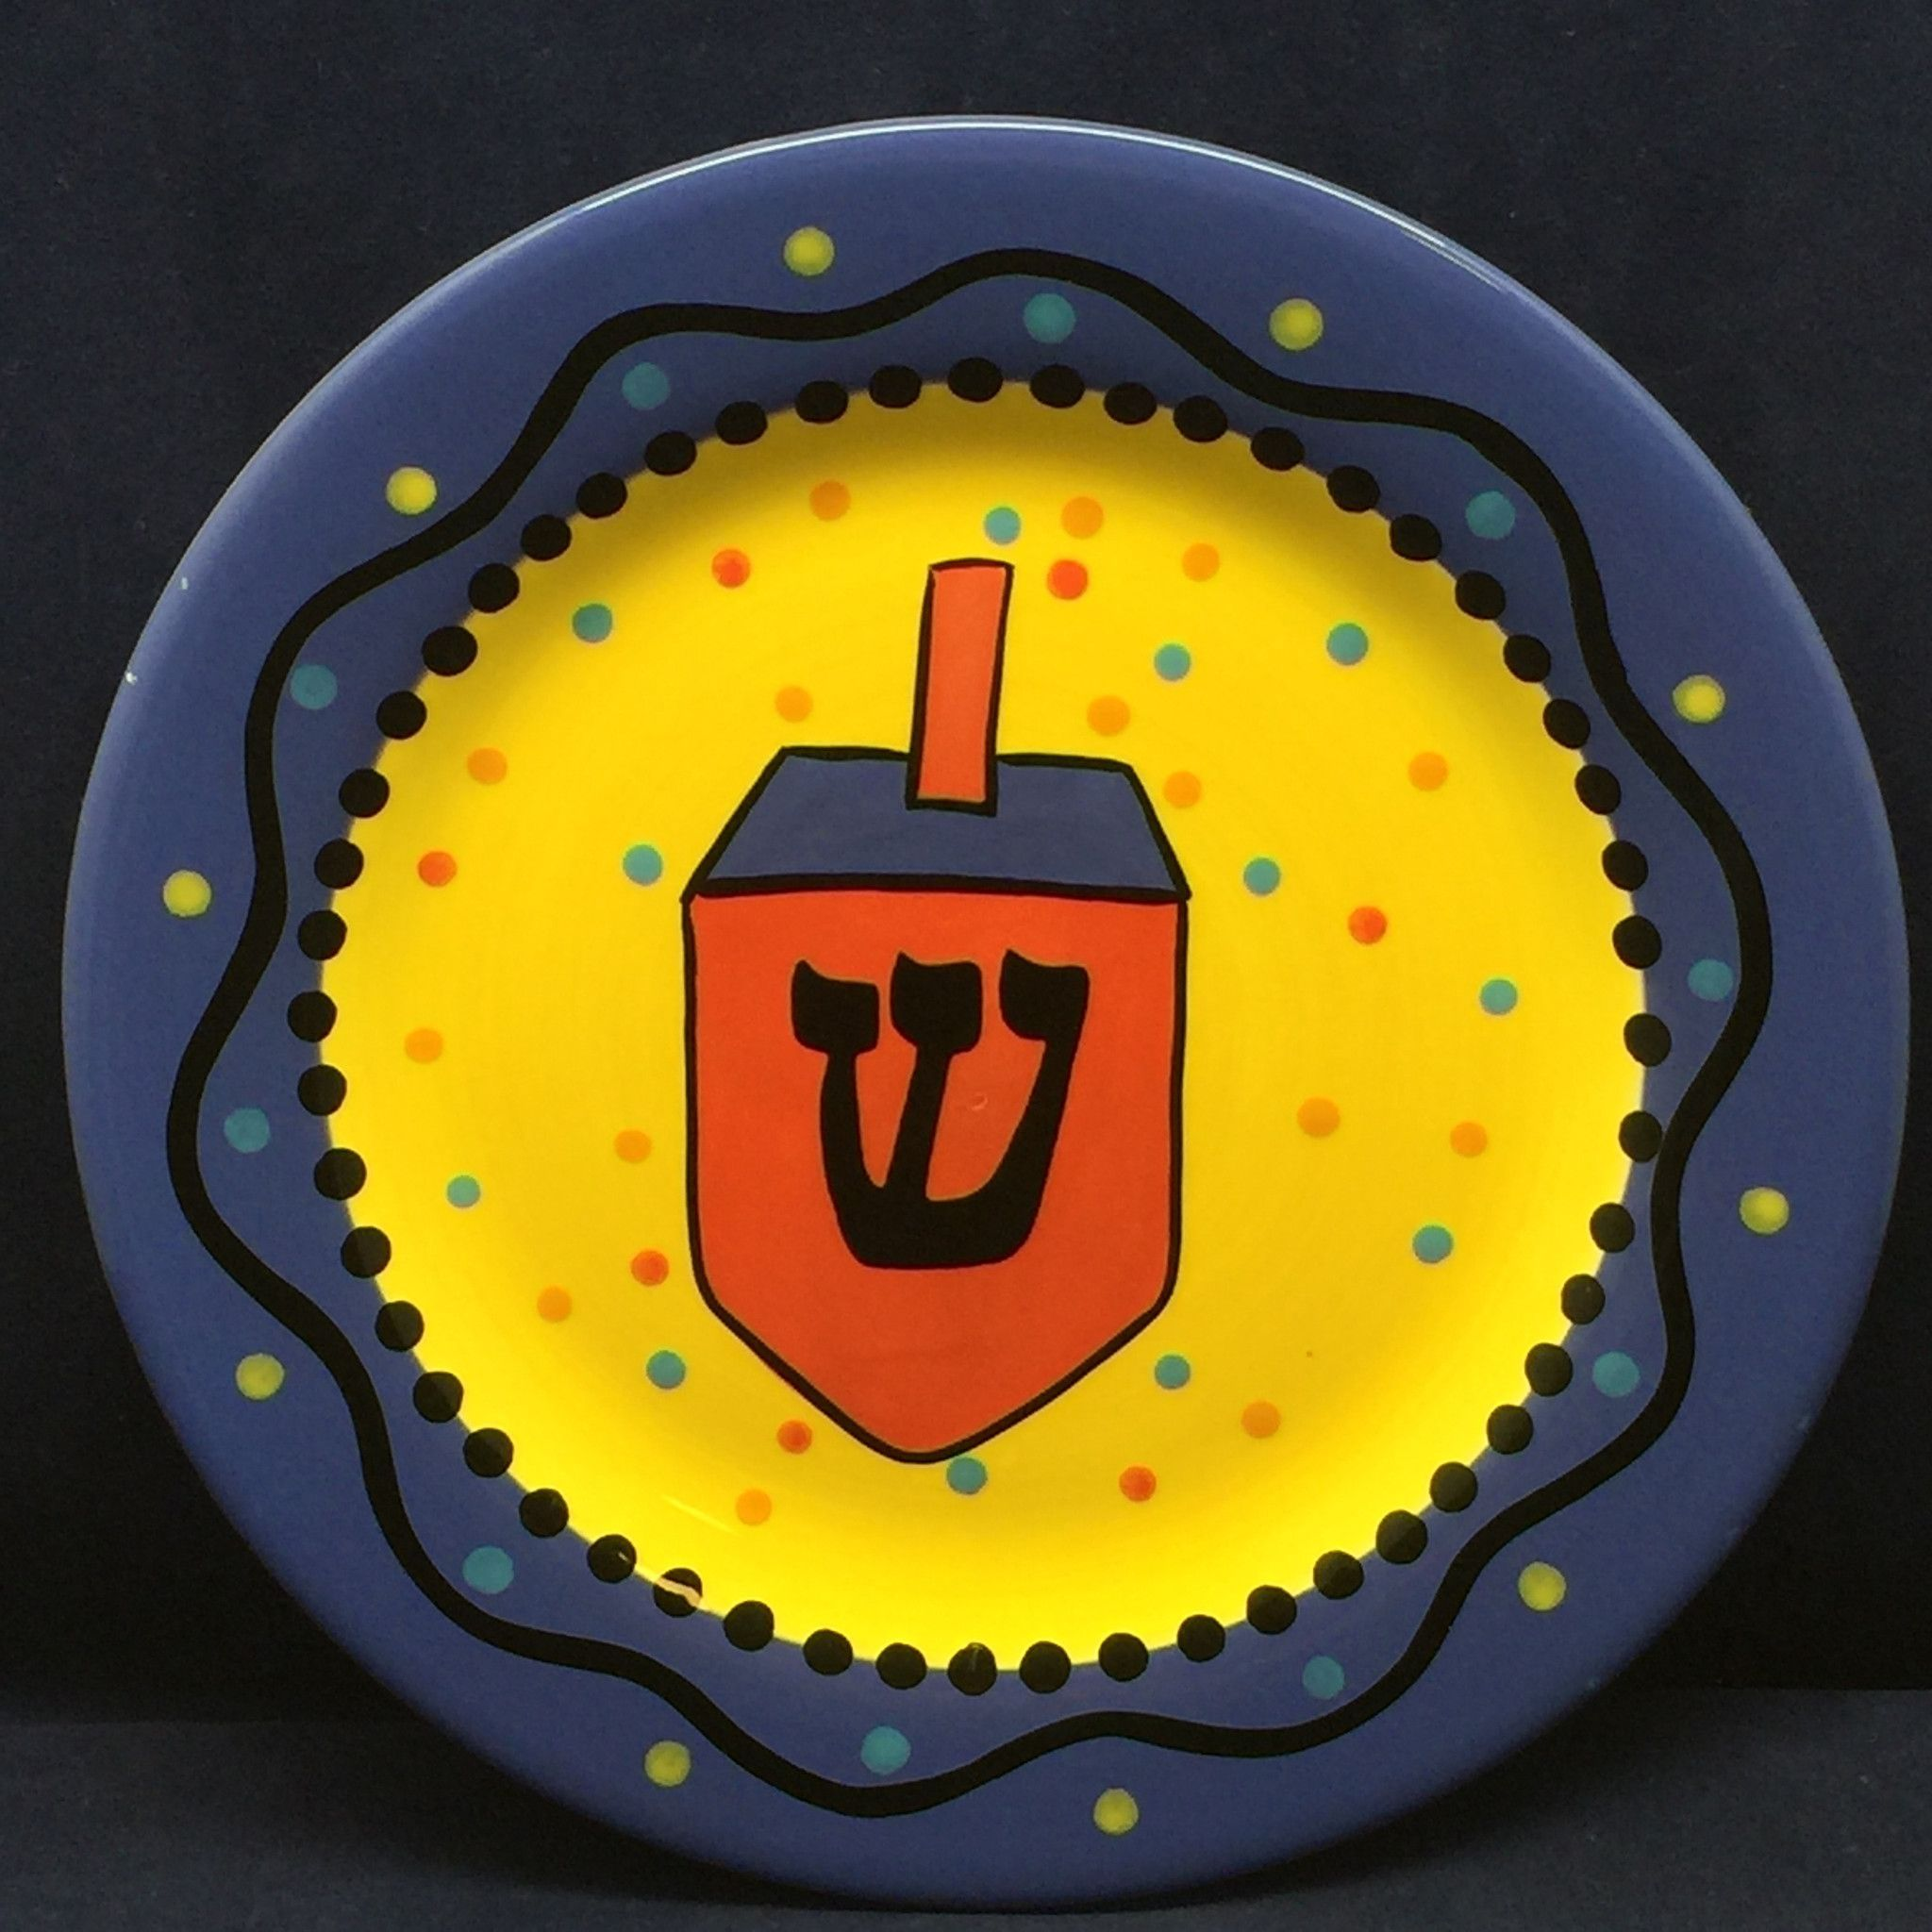 Chris Bubany Festival of Lights Dinner Plate Dreidel Hanukkah Blue SHIN Hebrew Yellow : light dinner plates - pezcame.com